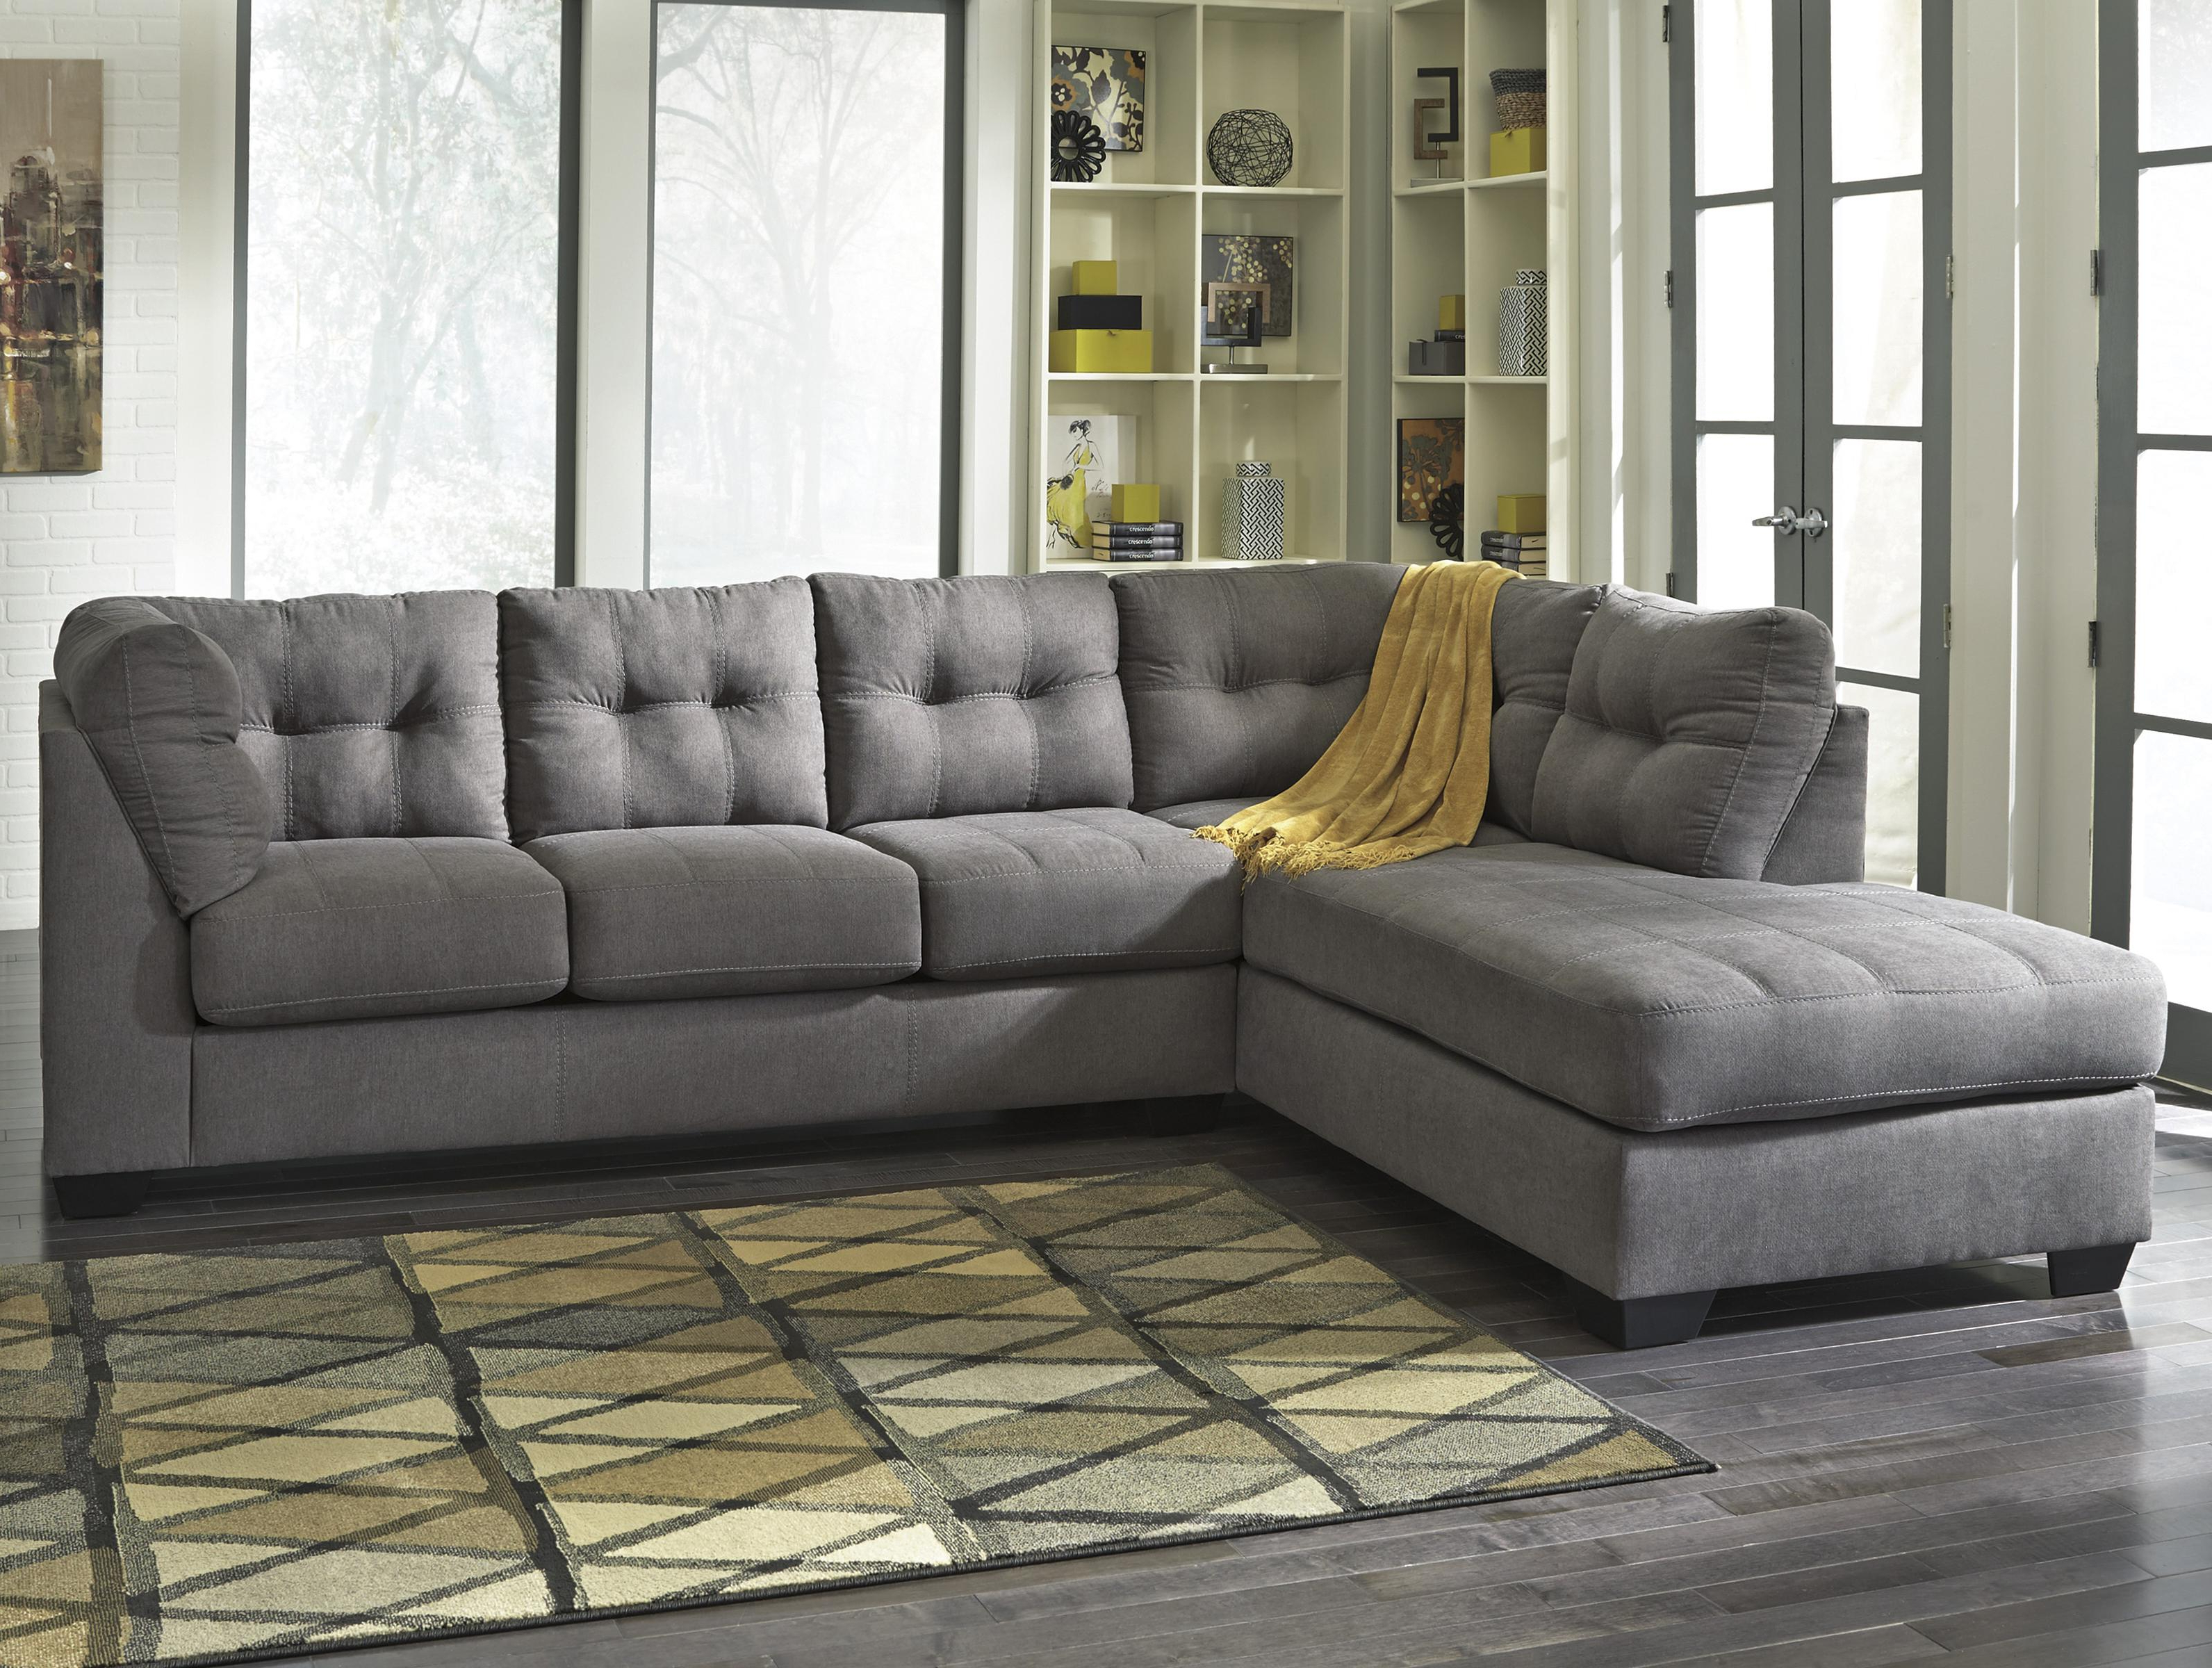 Josephine 2 Piece Sectionals With Laf Sofa Within Famous Sofas: Nice Looking Patola Park Sectional Design For Lovely Family (View 12 of 20)